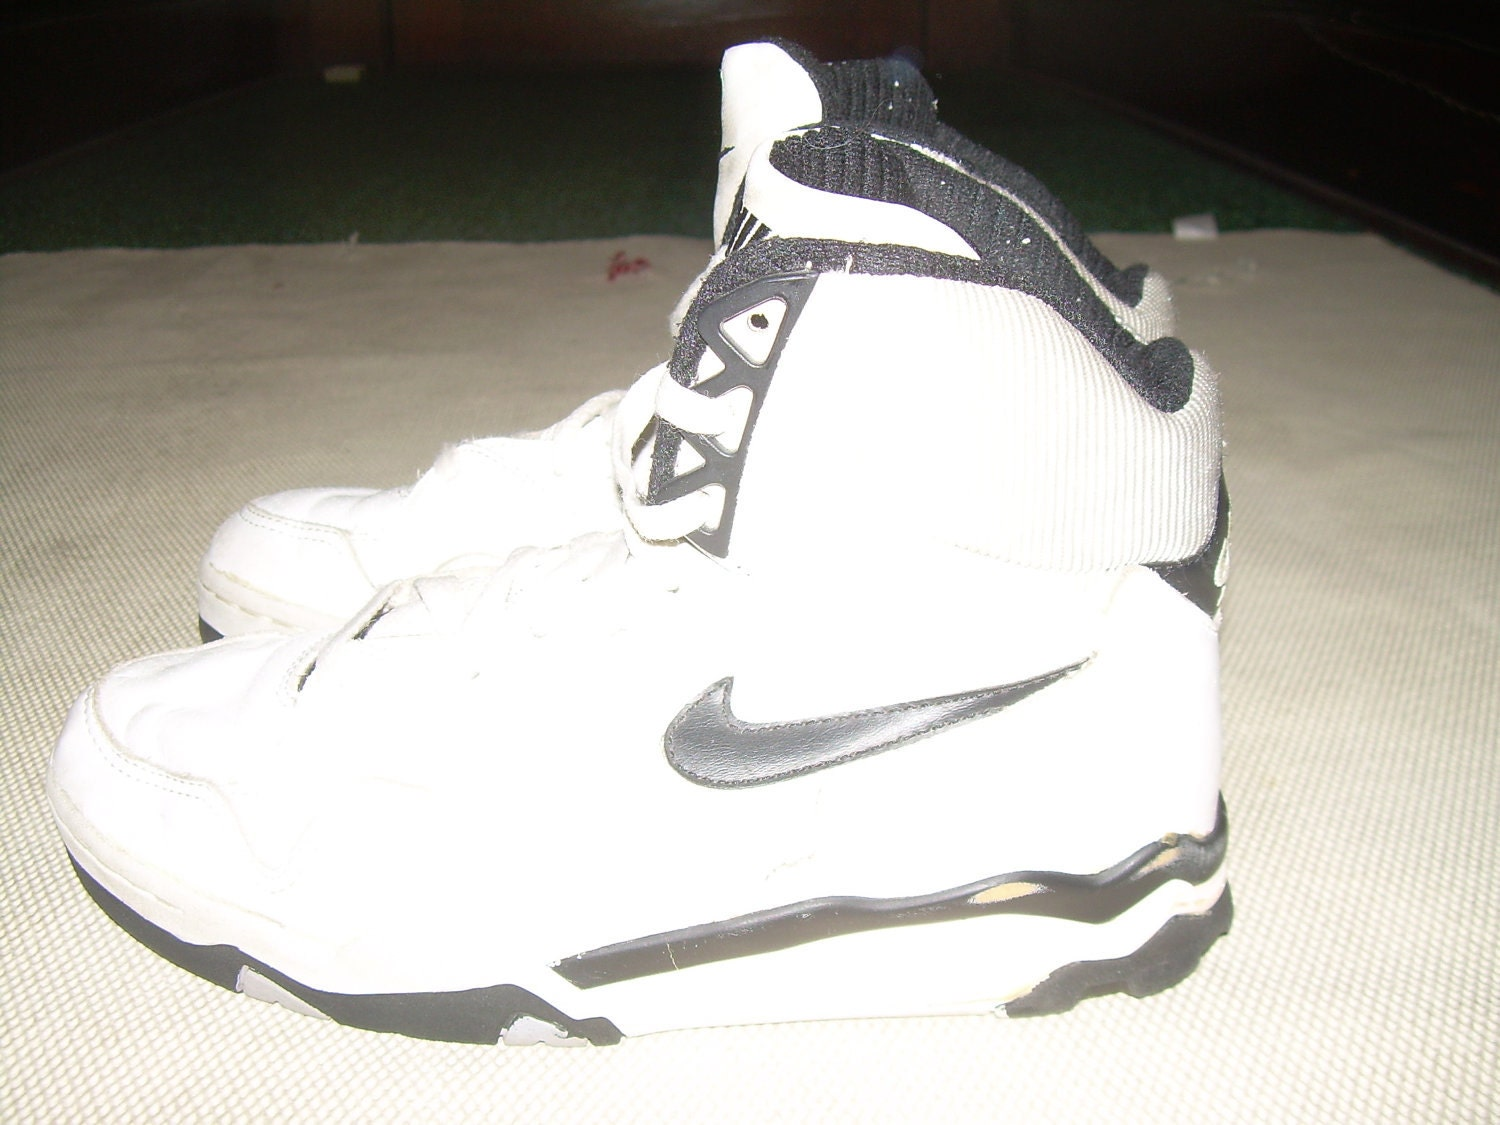 More information about Womens High Top Basketball Shoes on the site